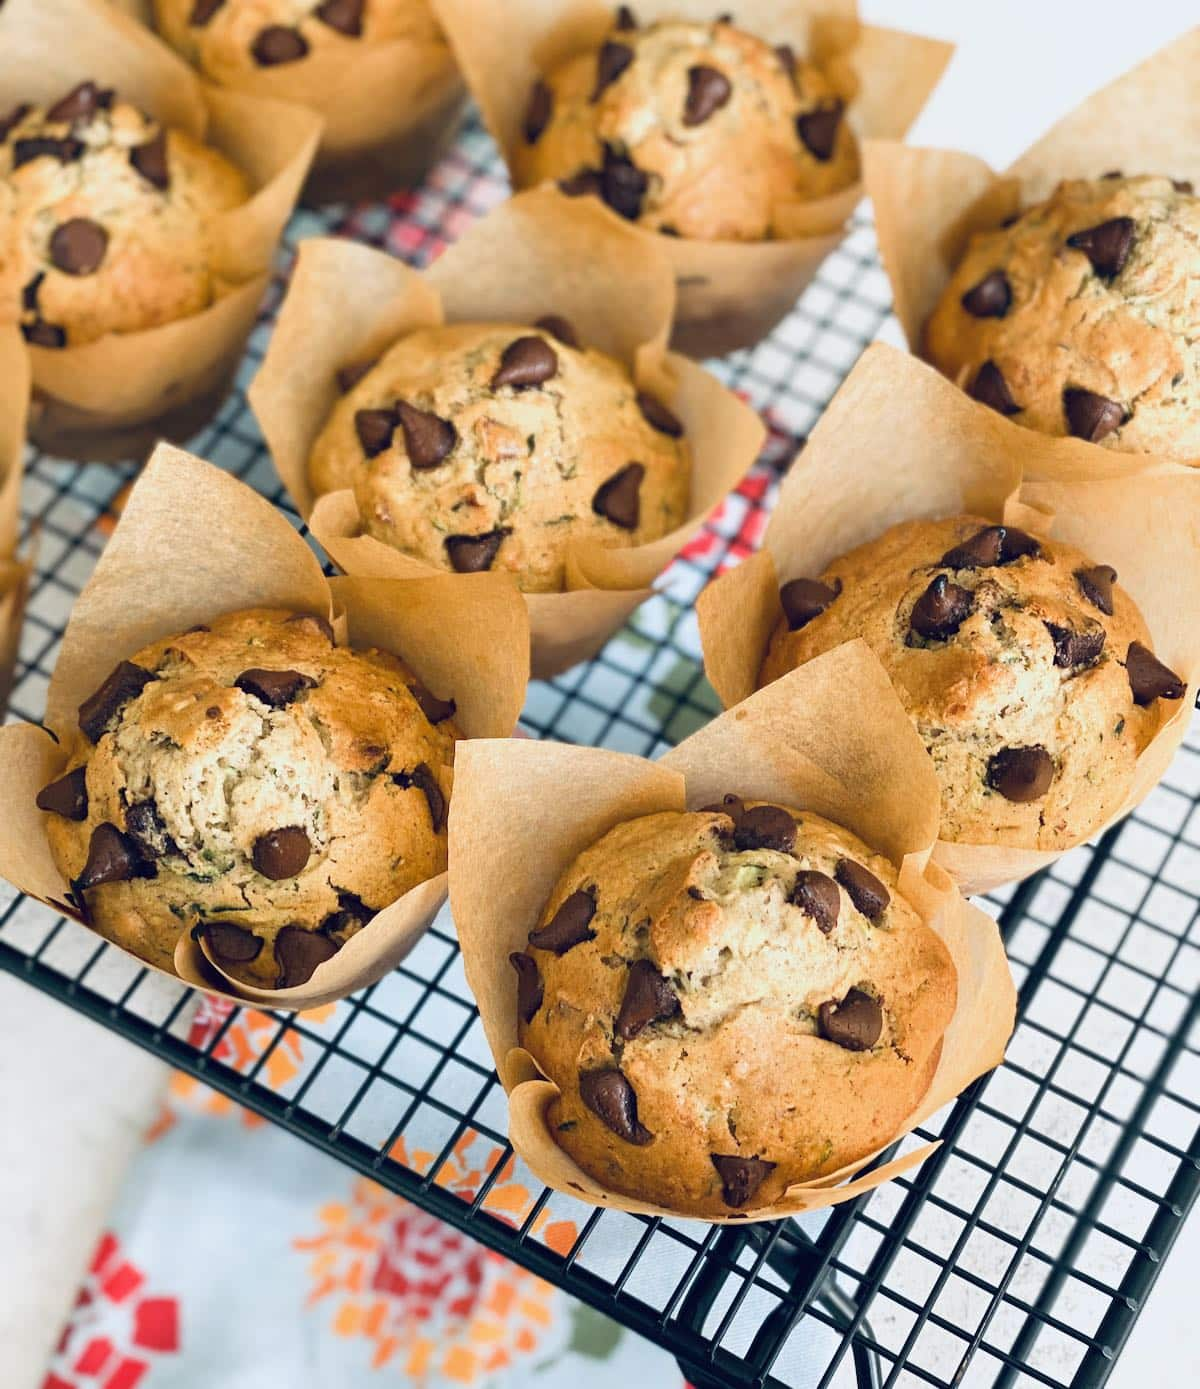 muffins on a rack with a floral towel underneath.